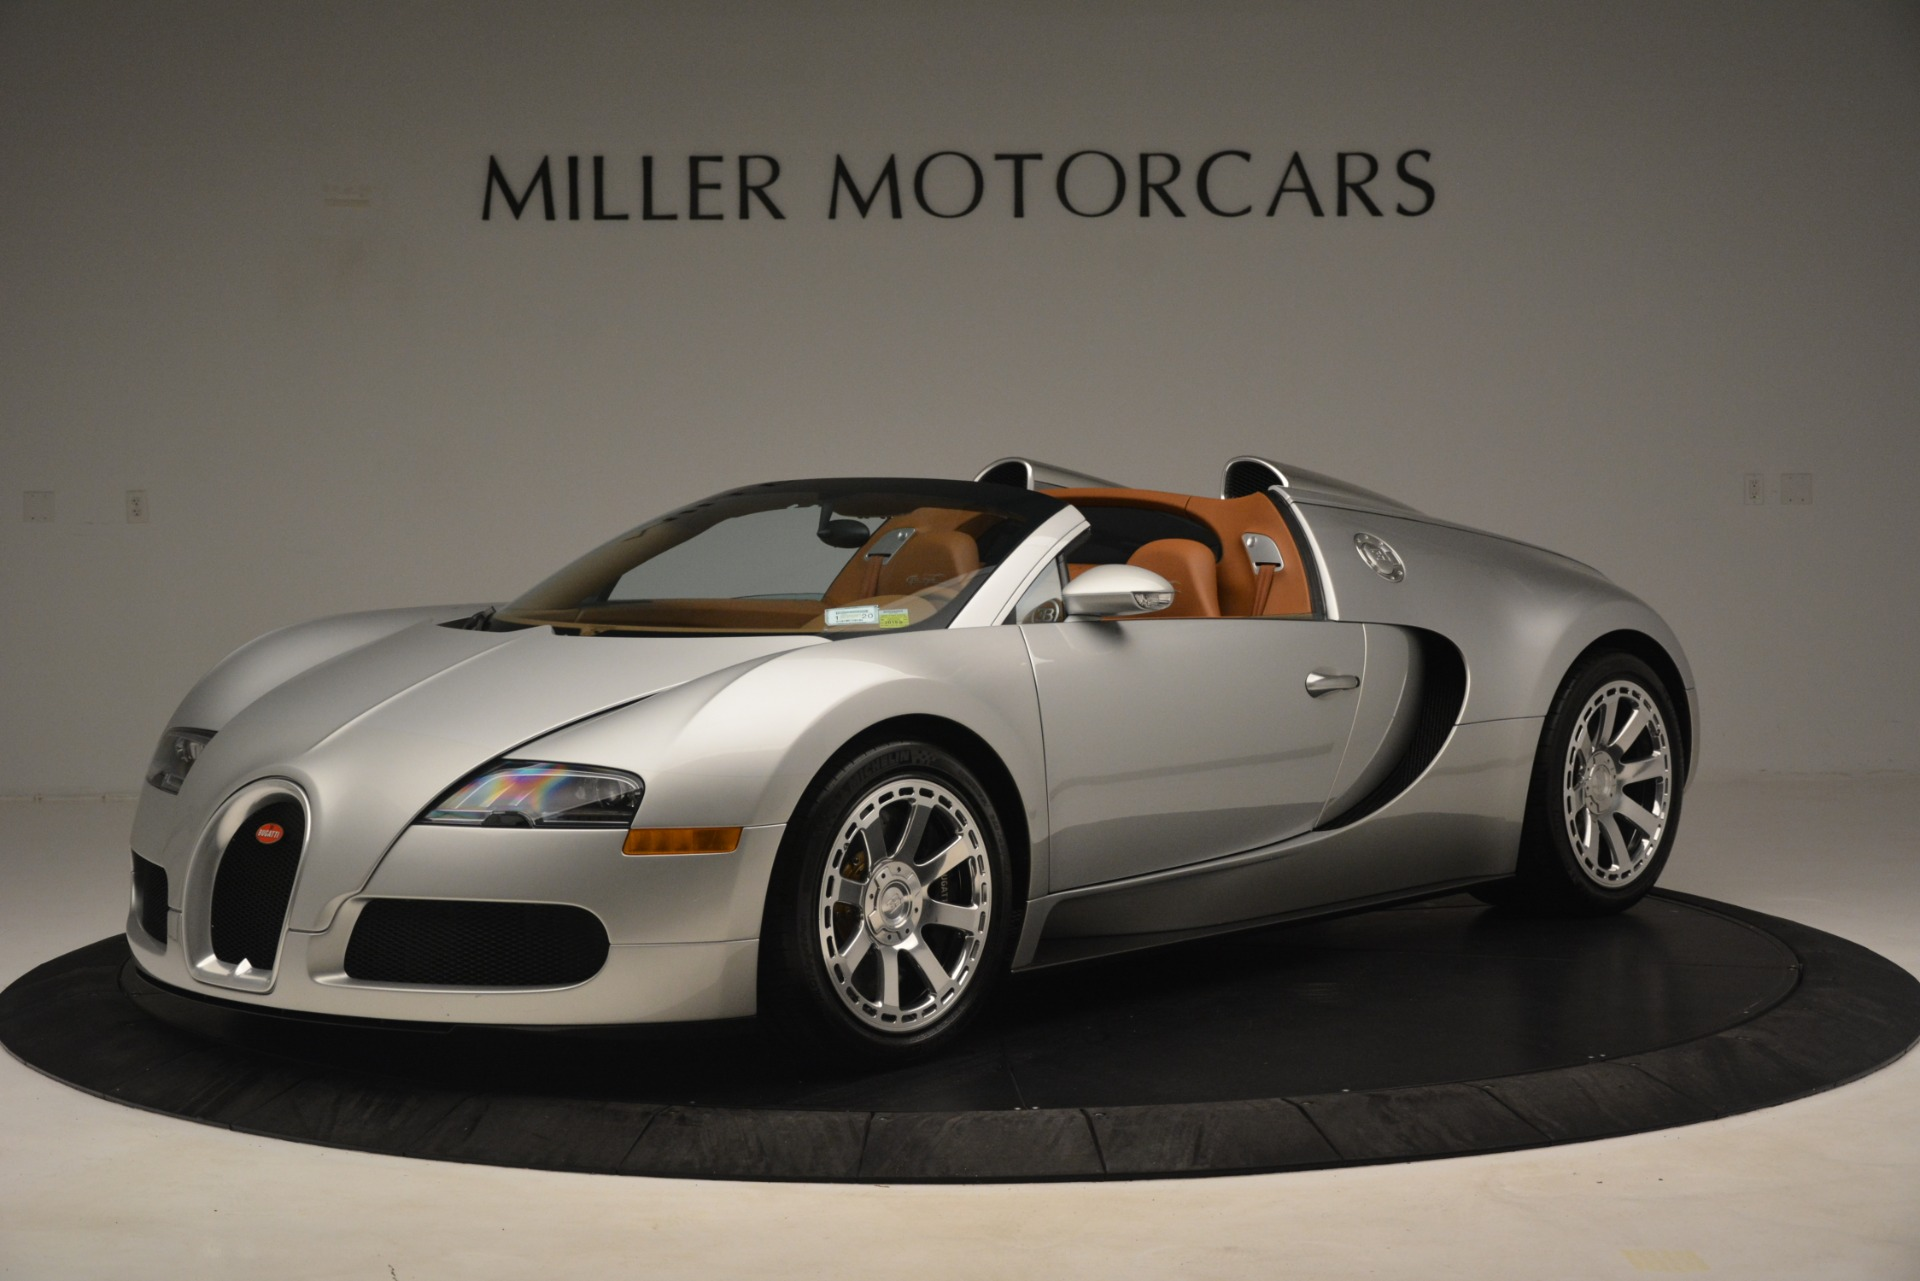 Used 2010 Bugatti Veyron 16.4 Grand Sport For Sale In Westport, CT 3159_p2